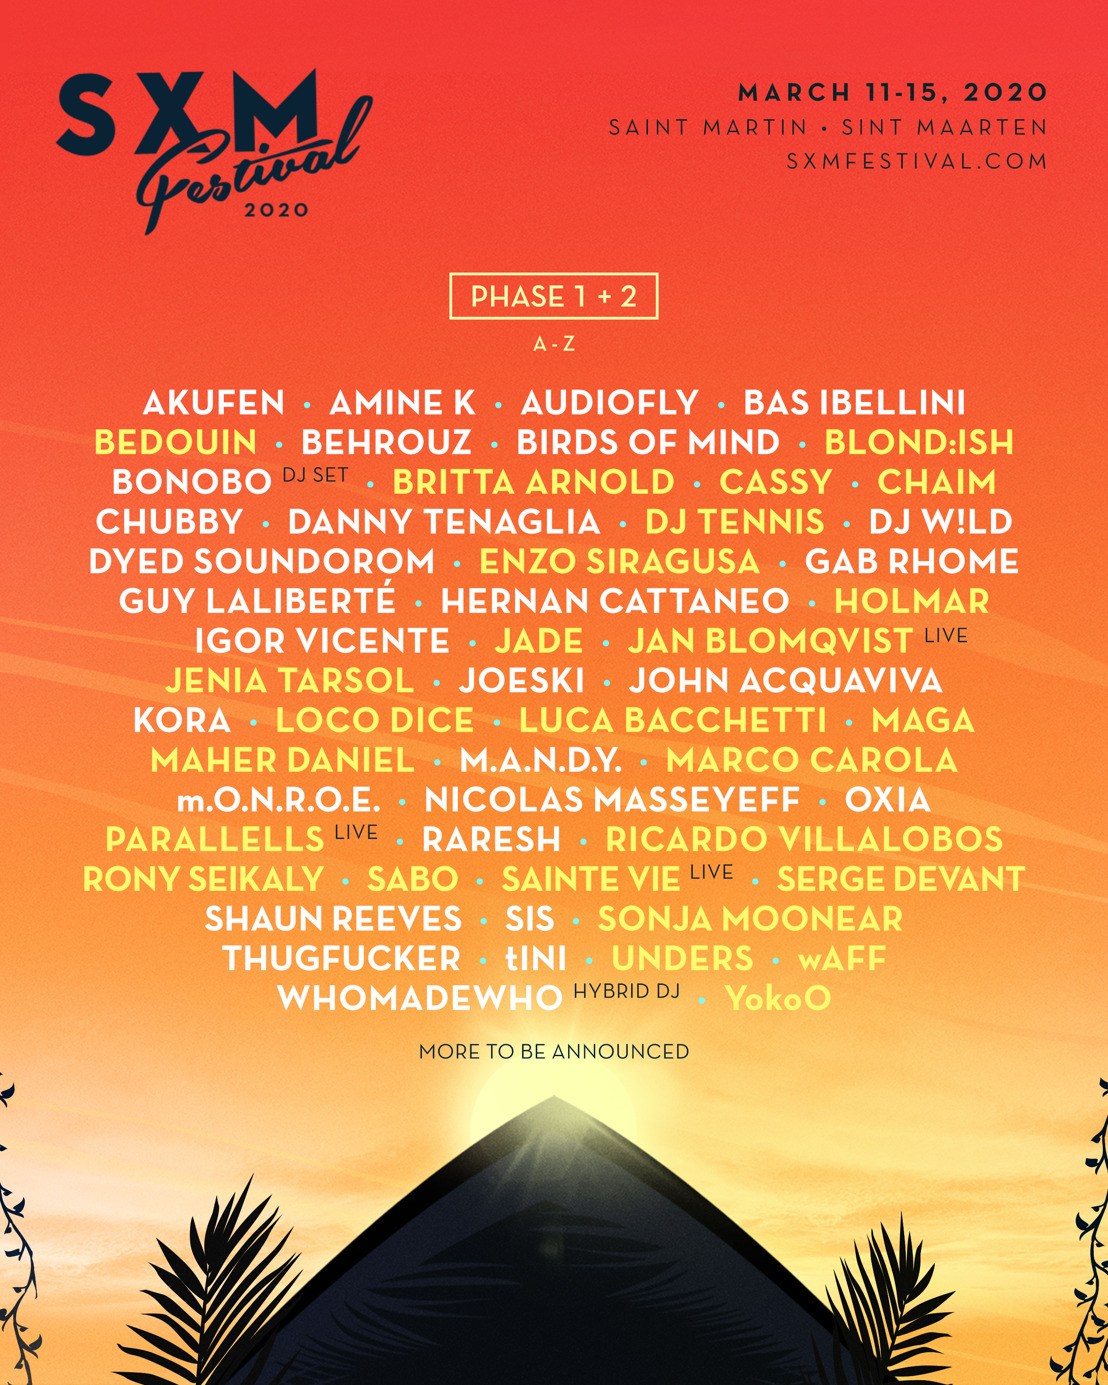 SXM Festival Announces Phase Two Lineup for March 11-15 Event on Caribbean Island of Saint Martin/Sint Maarten